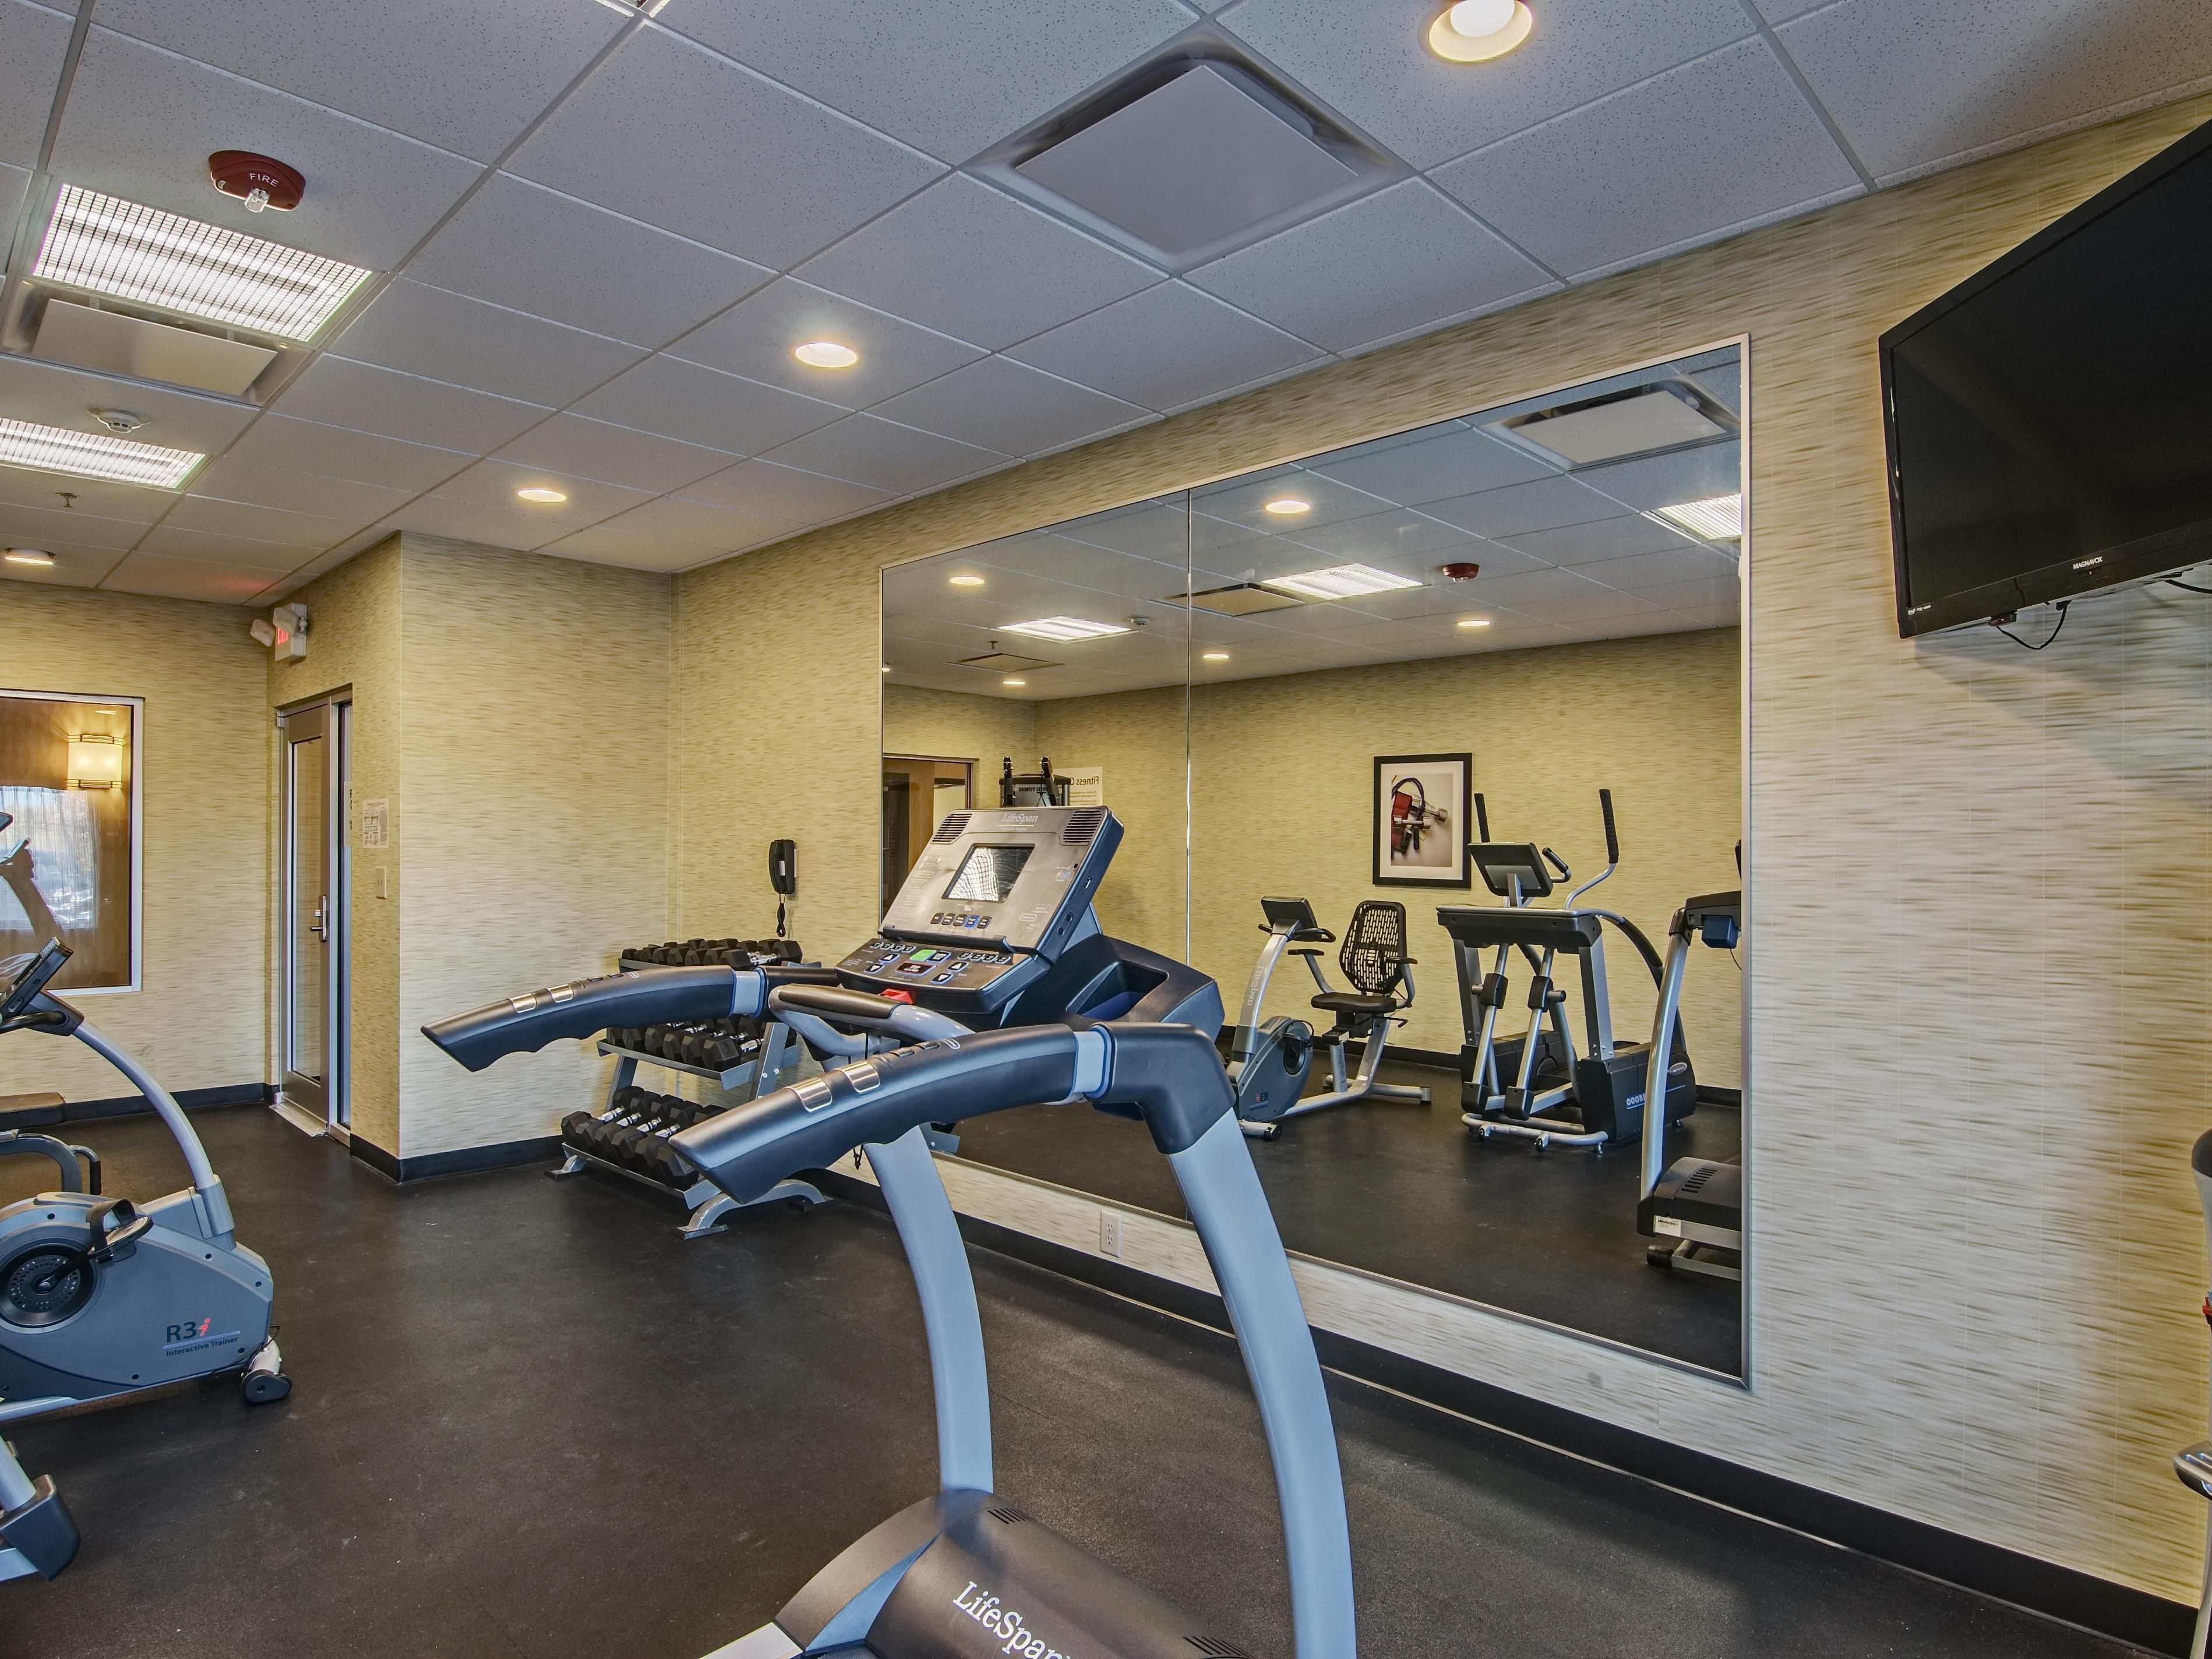 Fitness Center - equipped with a television and water cooler